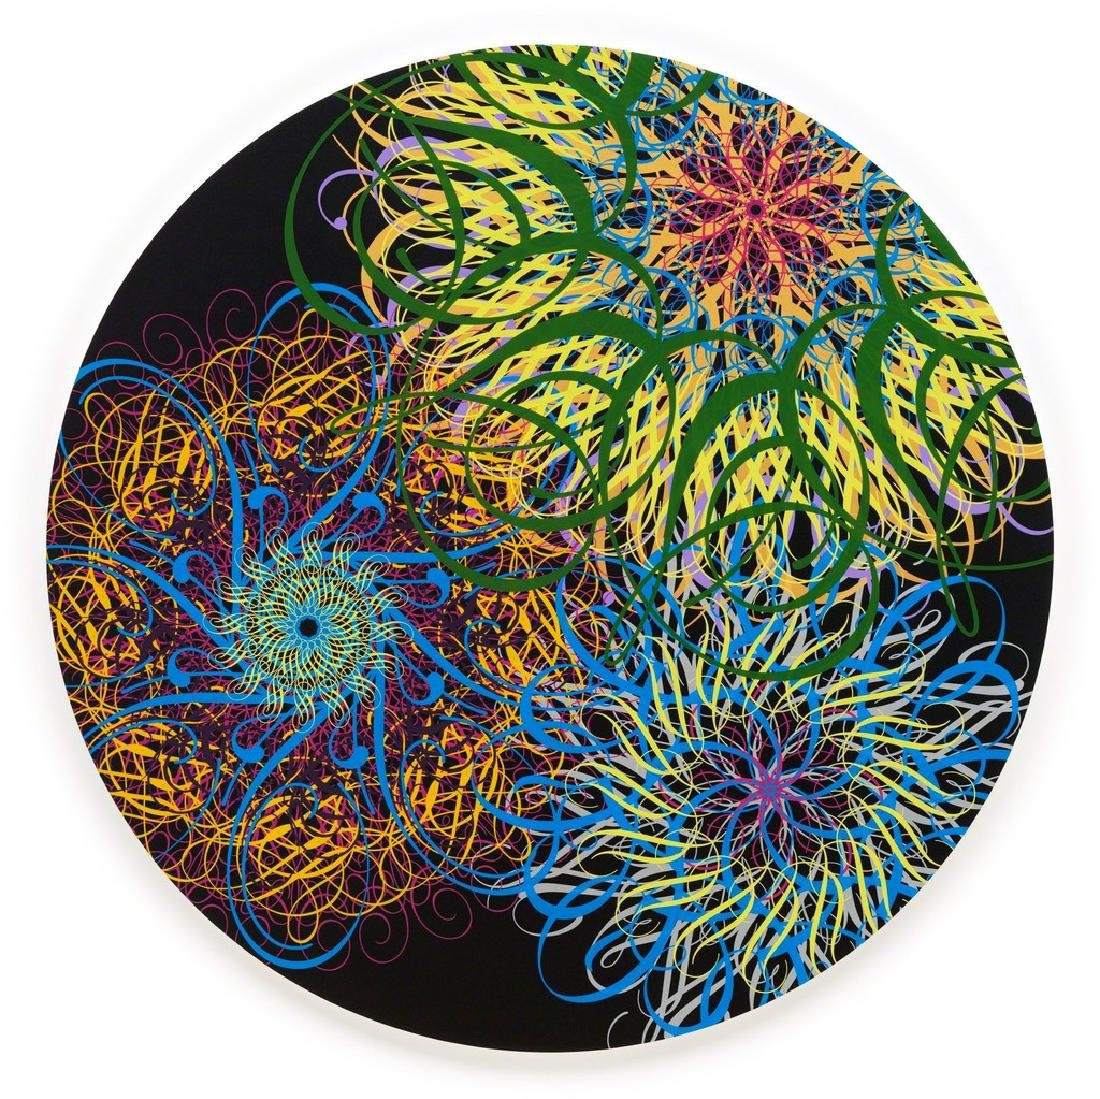 Ryan McGinness - Black Hole (Dark Energy Black)